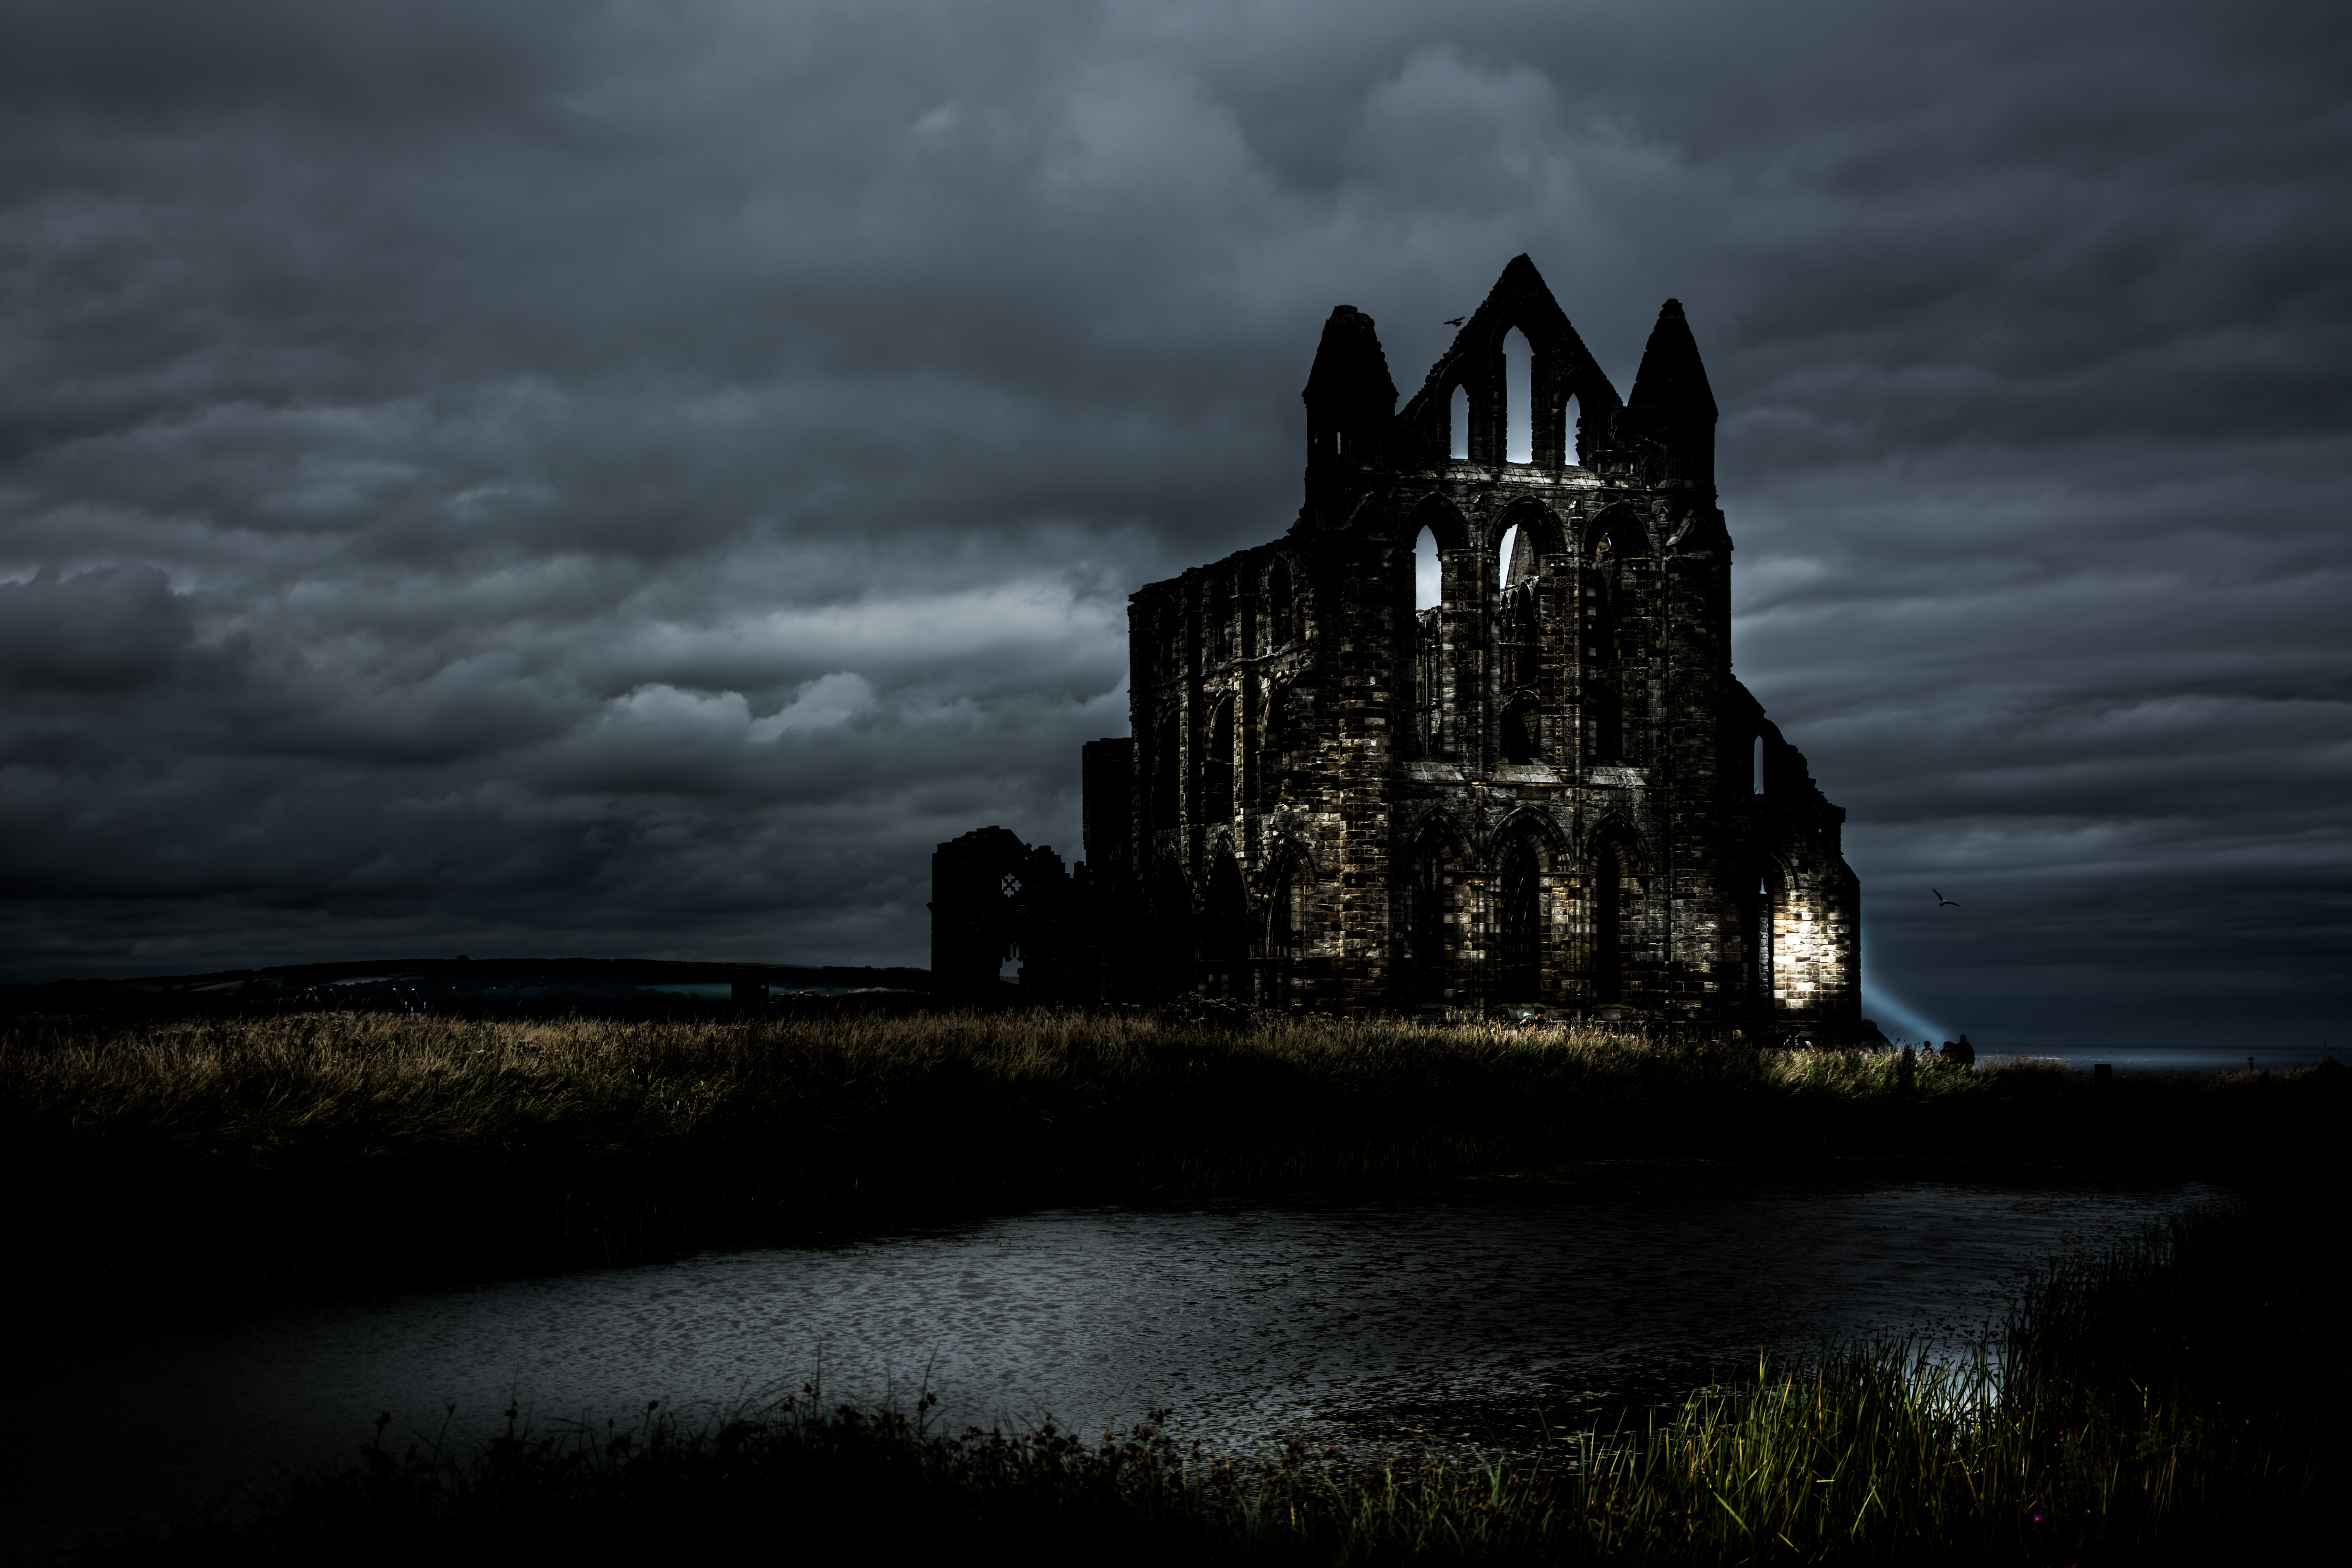 Snap 4 Sport >> Whitby Abbey at night 3 - Clickasnap - The world's largest, free to use, paid per view, image ...